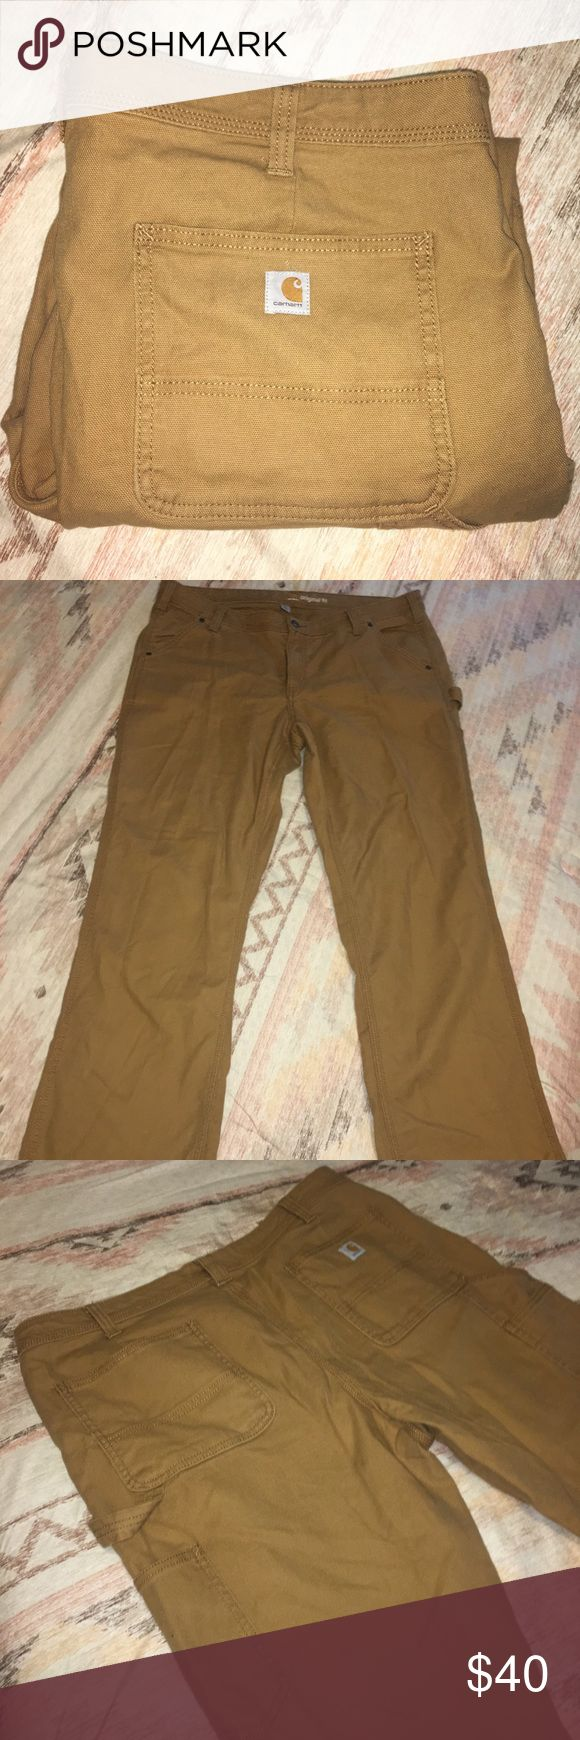 Carhartt Pants Carhartt original fit work pants. Excellent used condition, only worn once or twice. Carhartt Pants Trousers